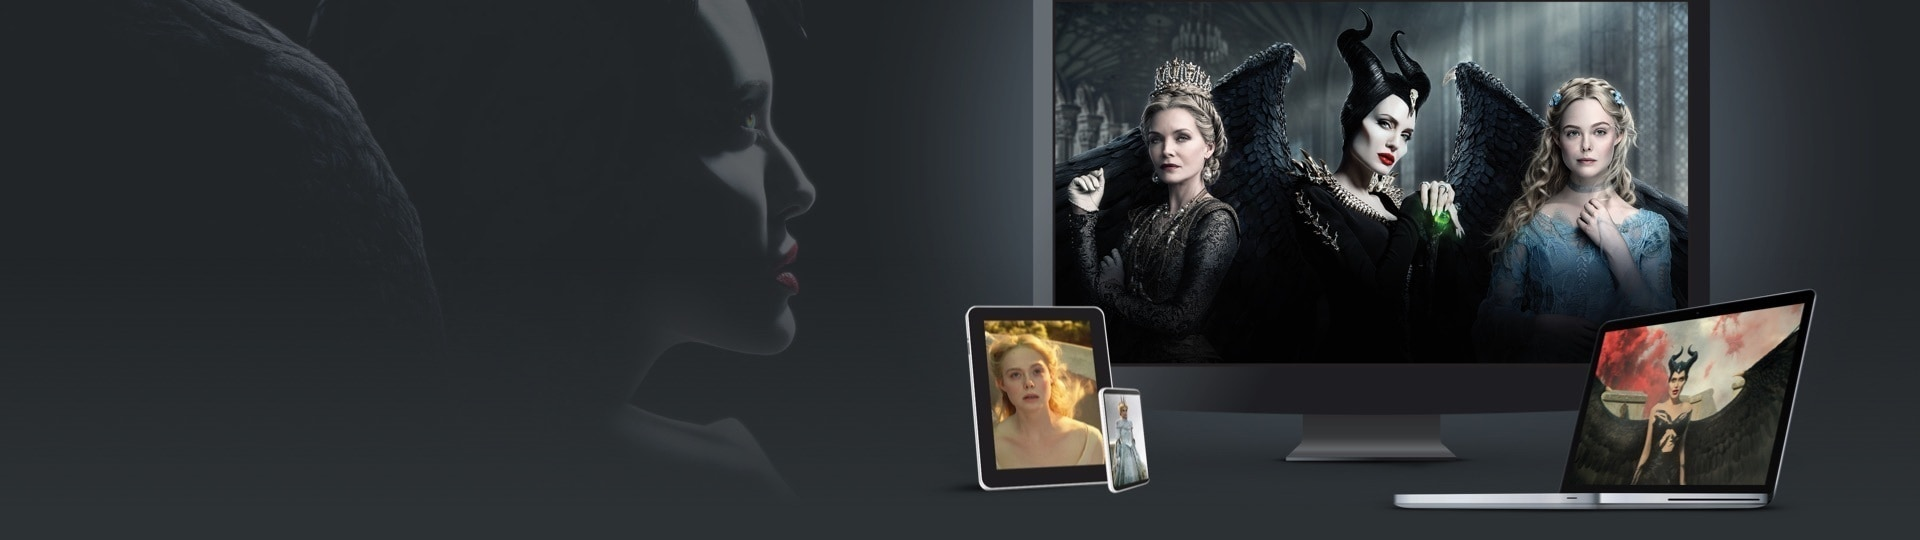 Maleficent: Signora del male in download digitale